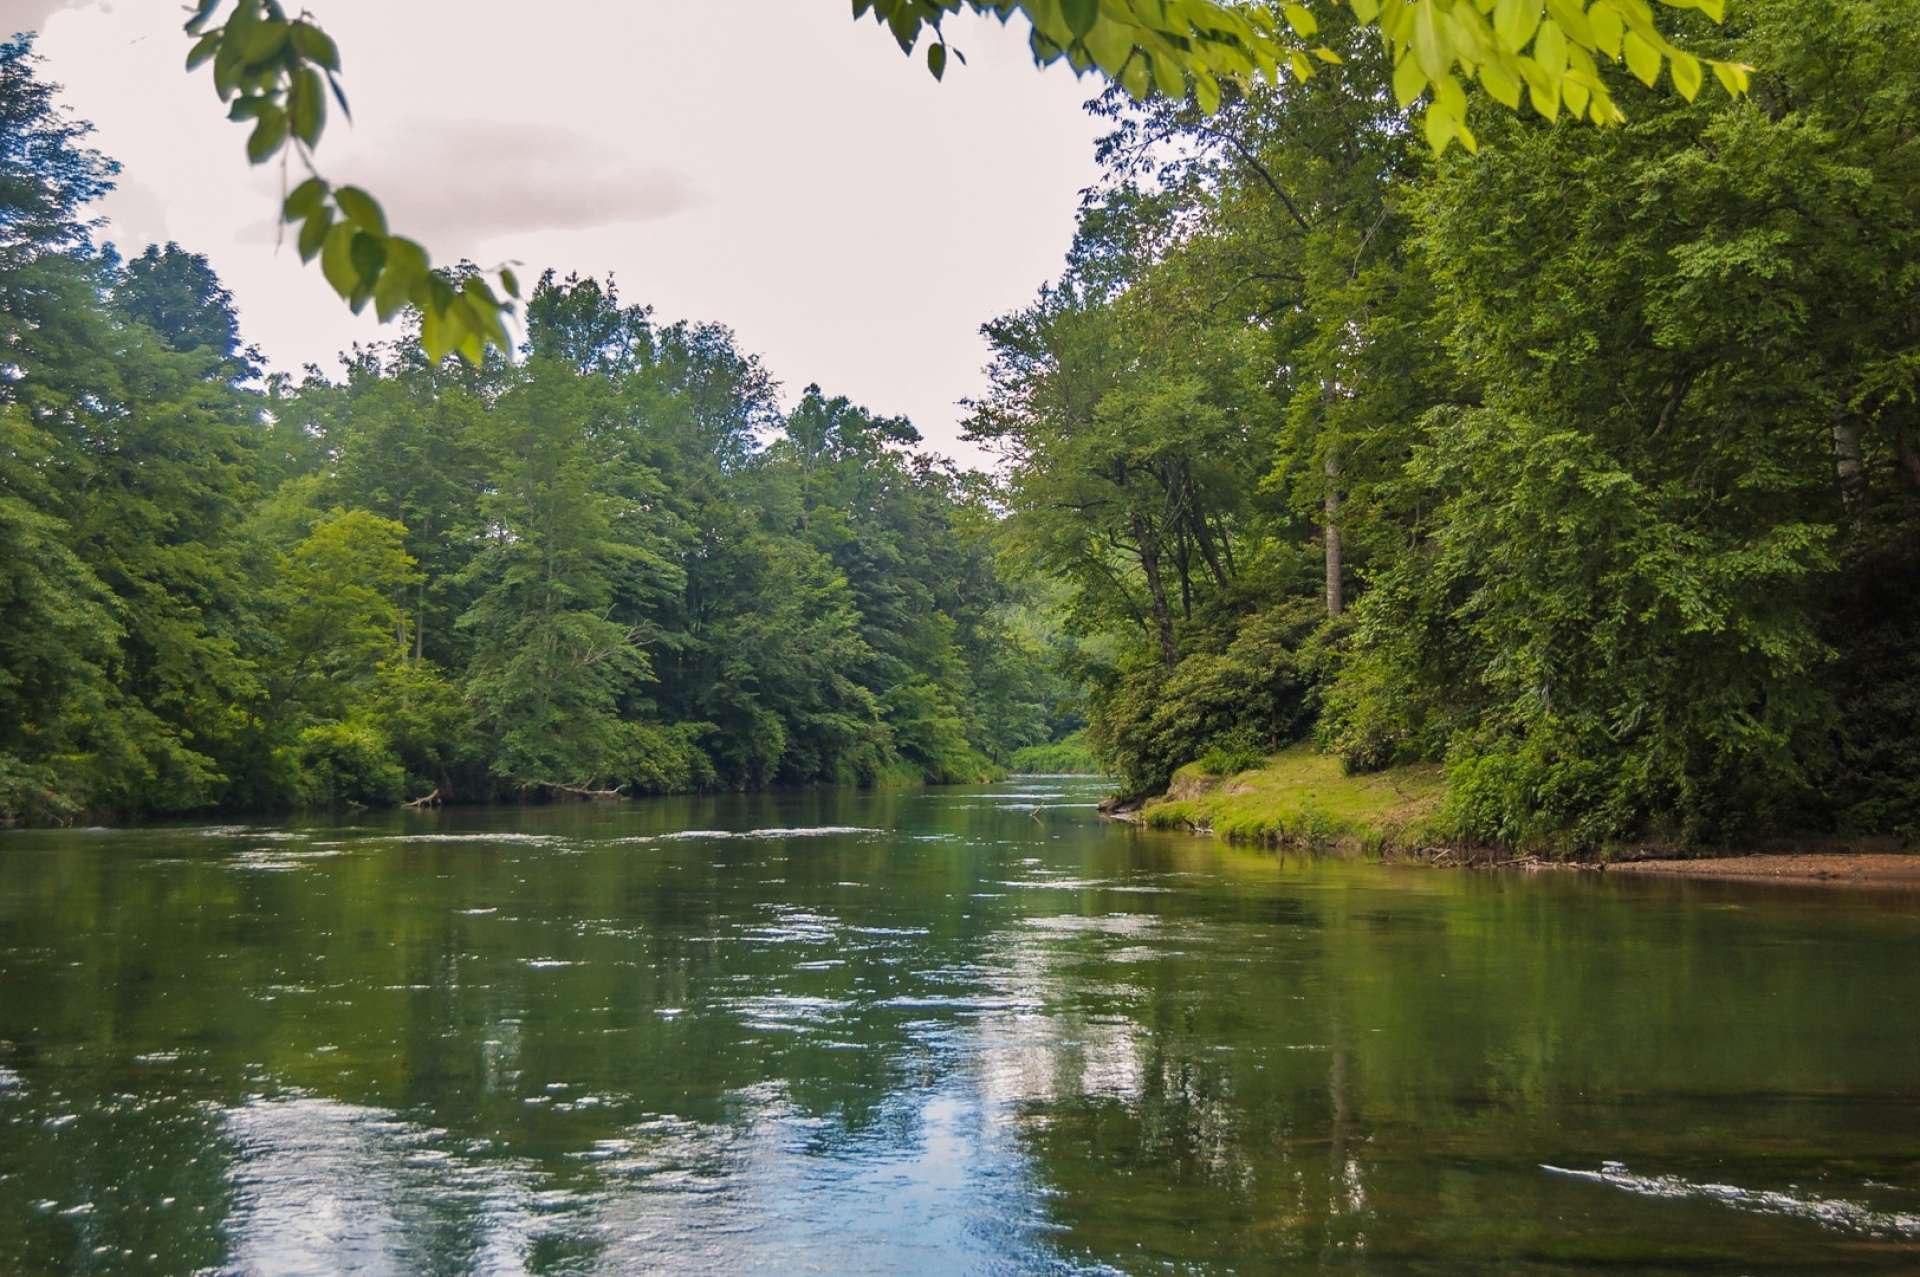 Imagine the sounds of the water and the gentle breezes through the trees as you float down the river.